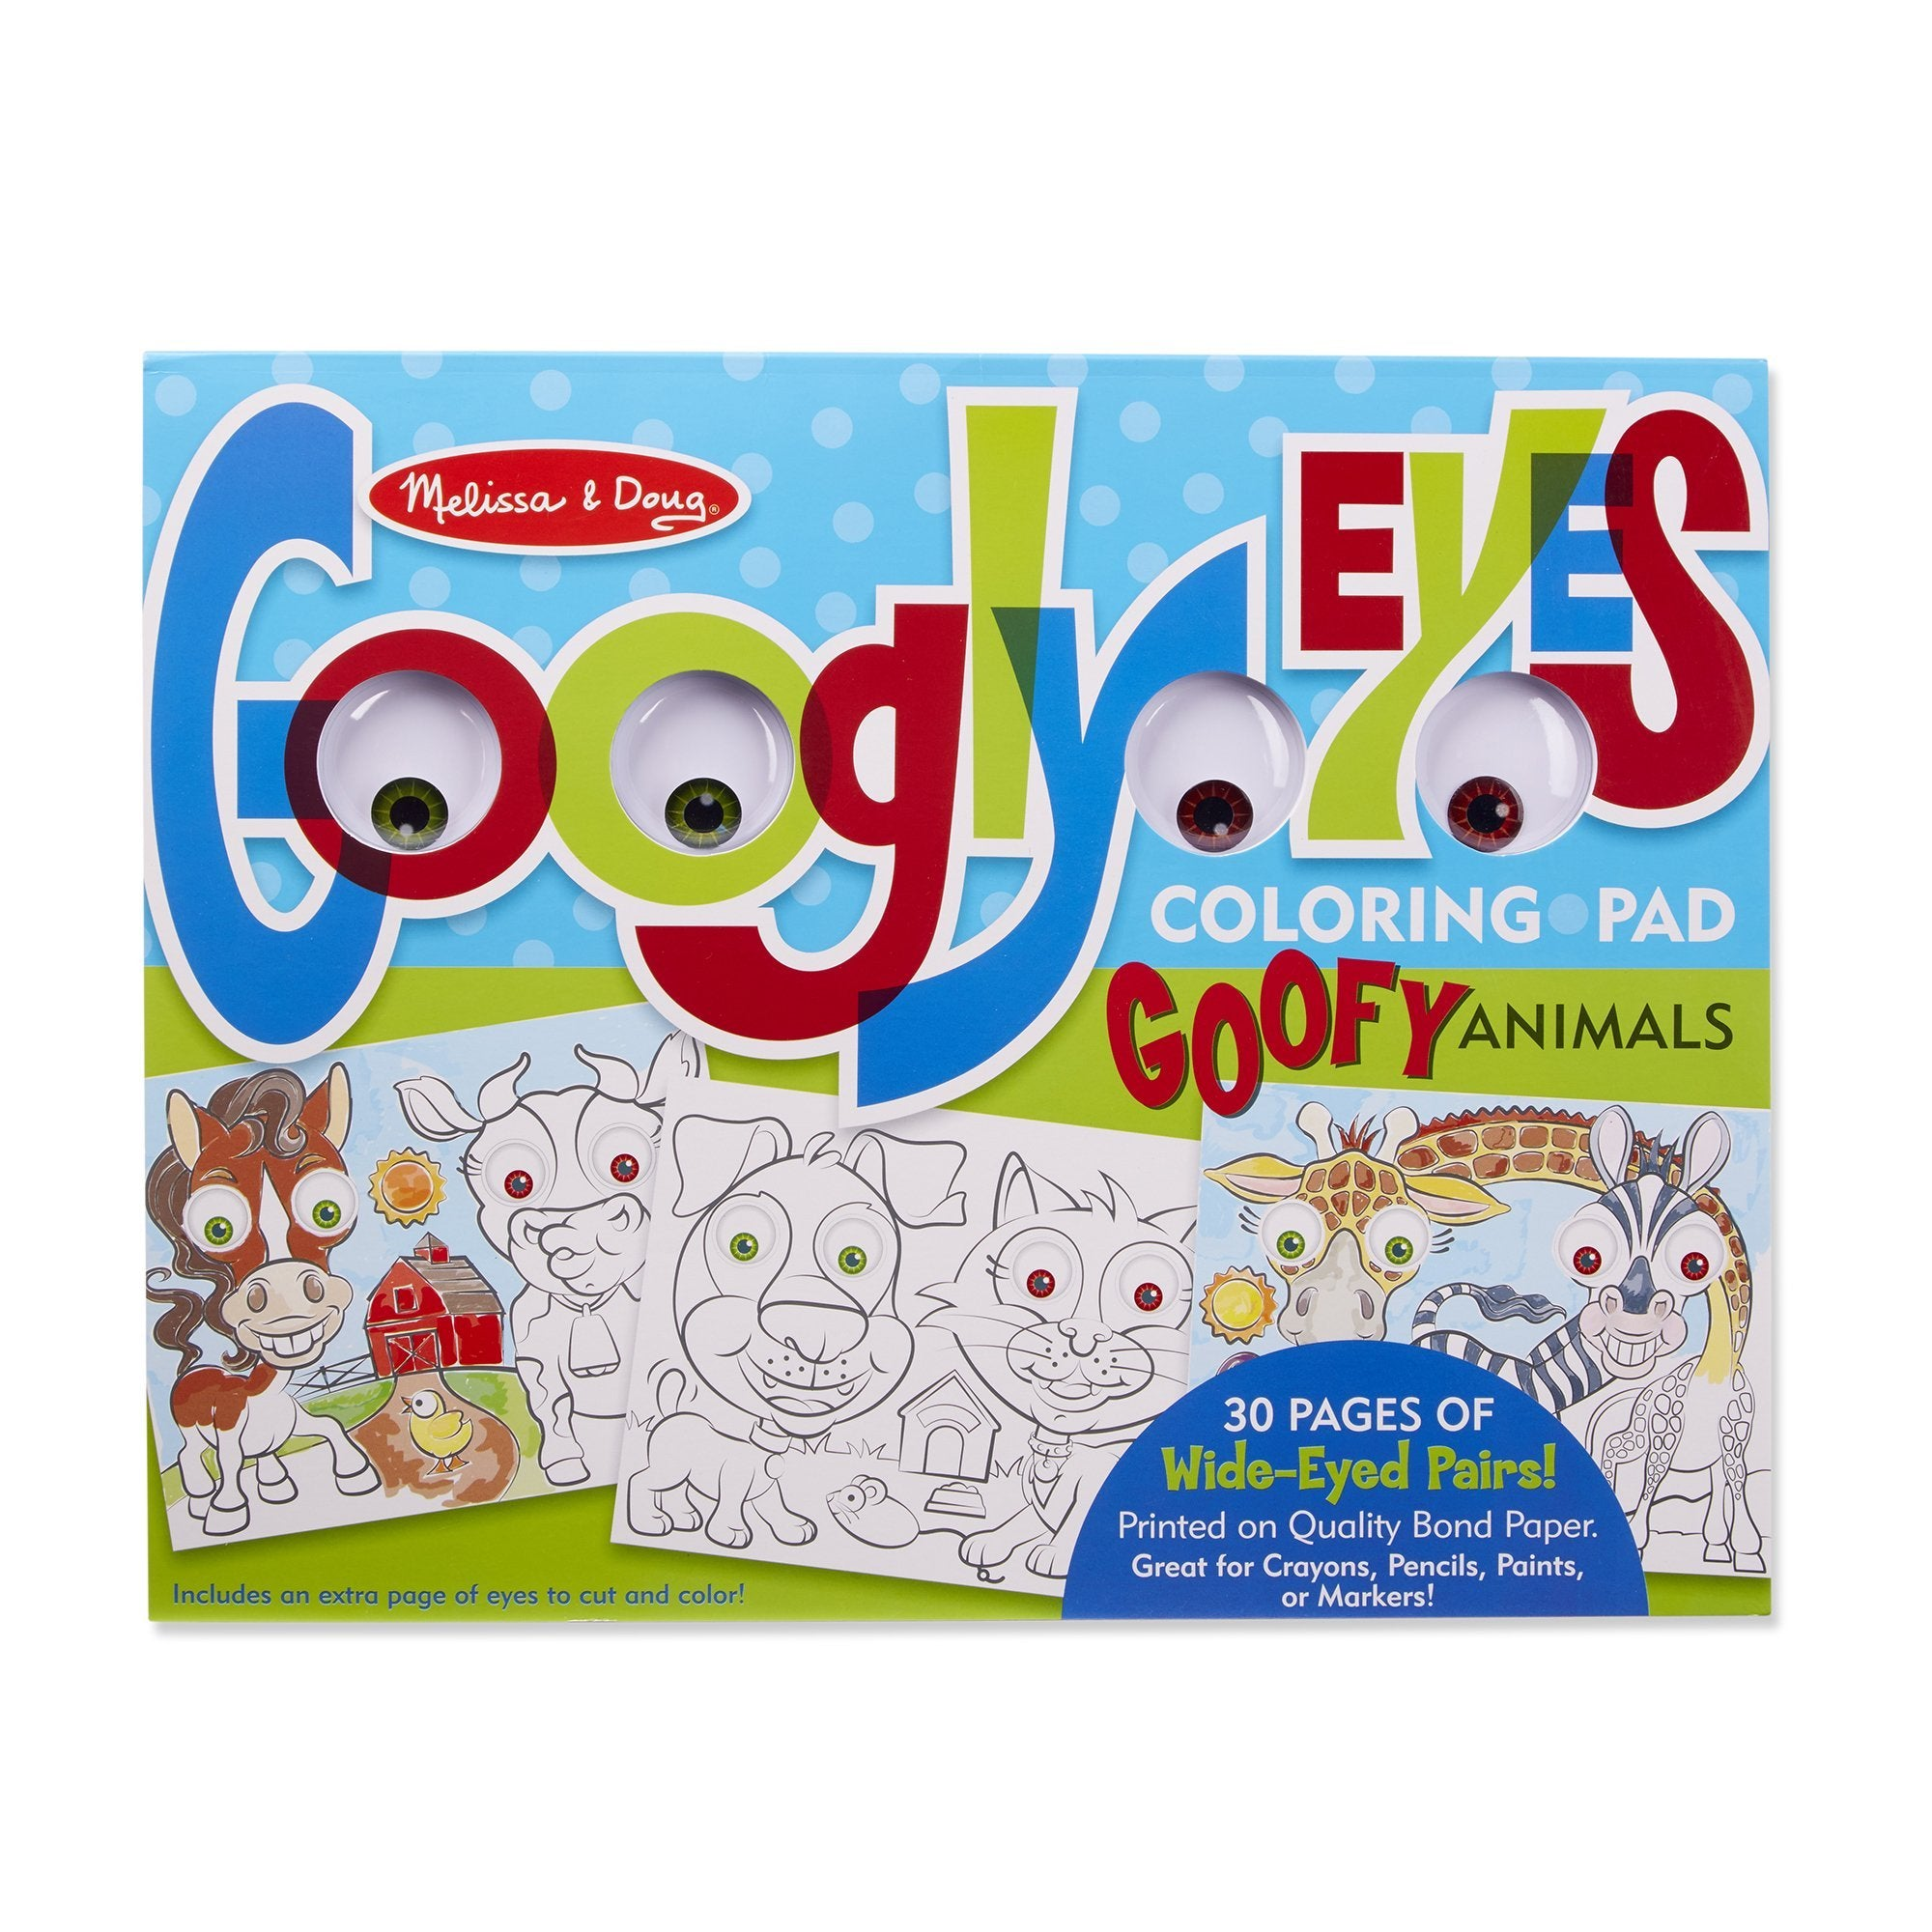 Wacky Animals - Googly Eyes Coloring Pad